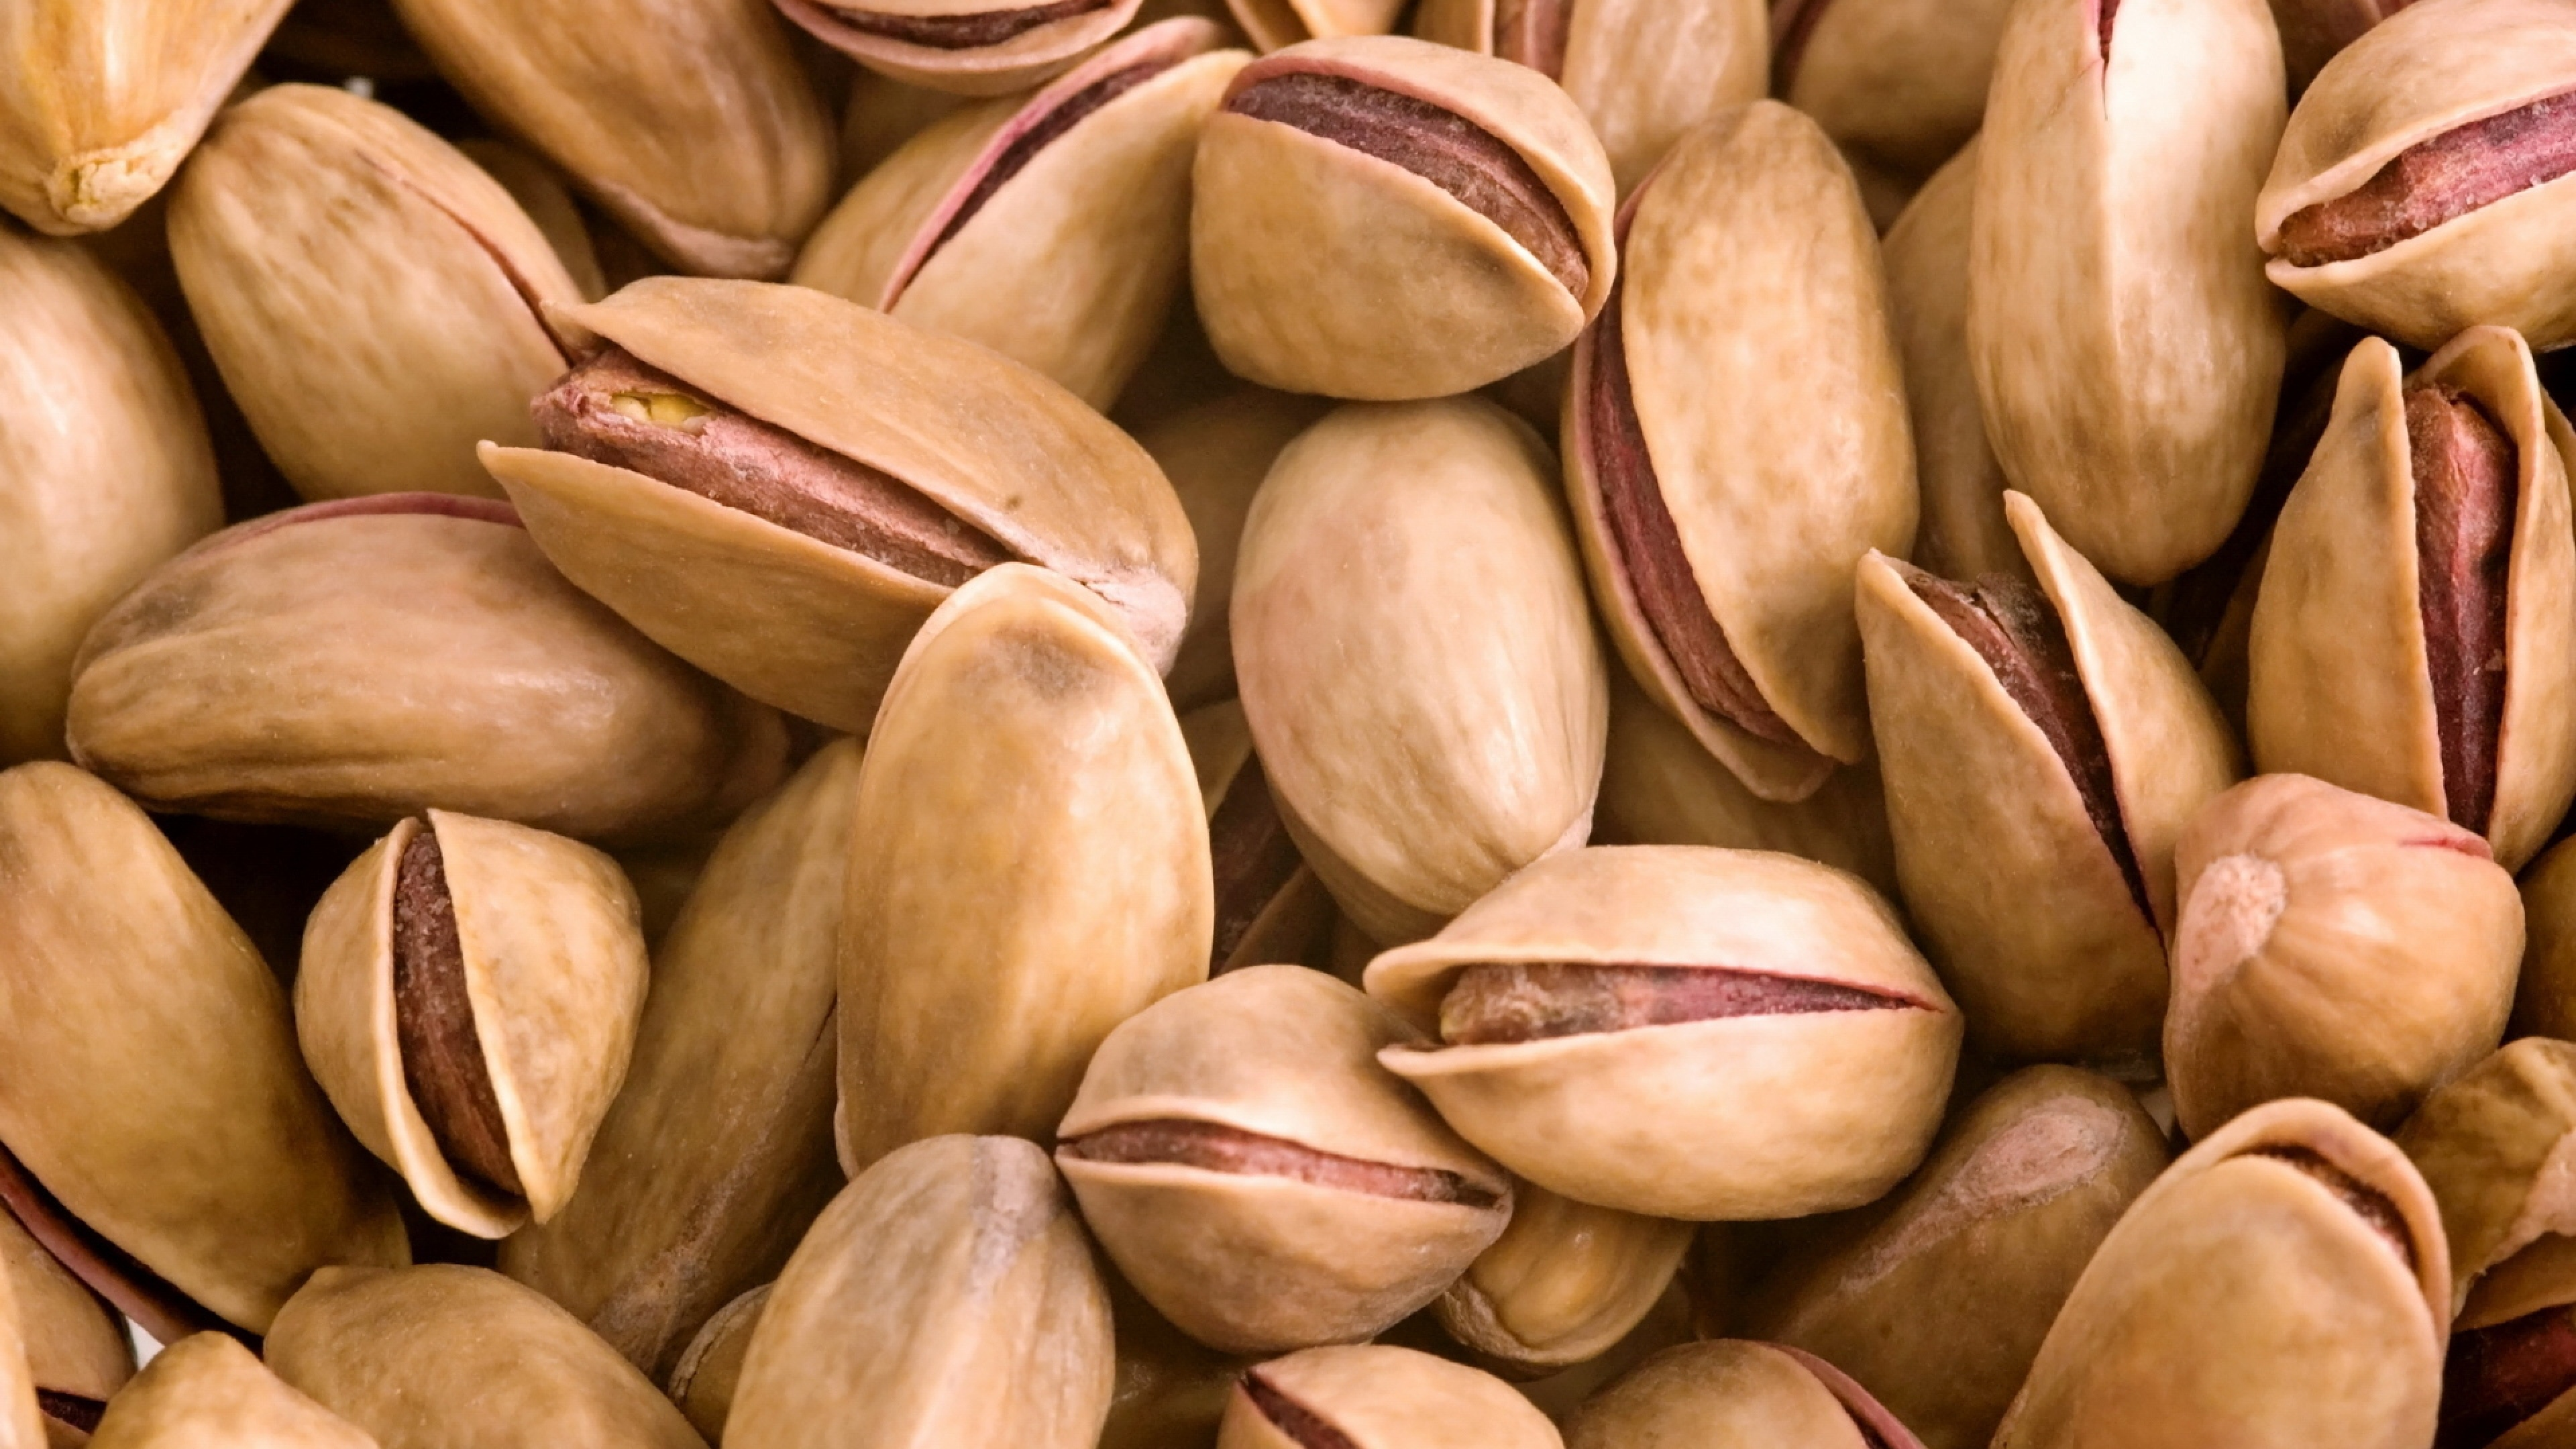 pistachio nuts wide hd wallpaper 52122